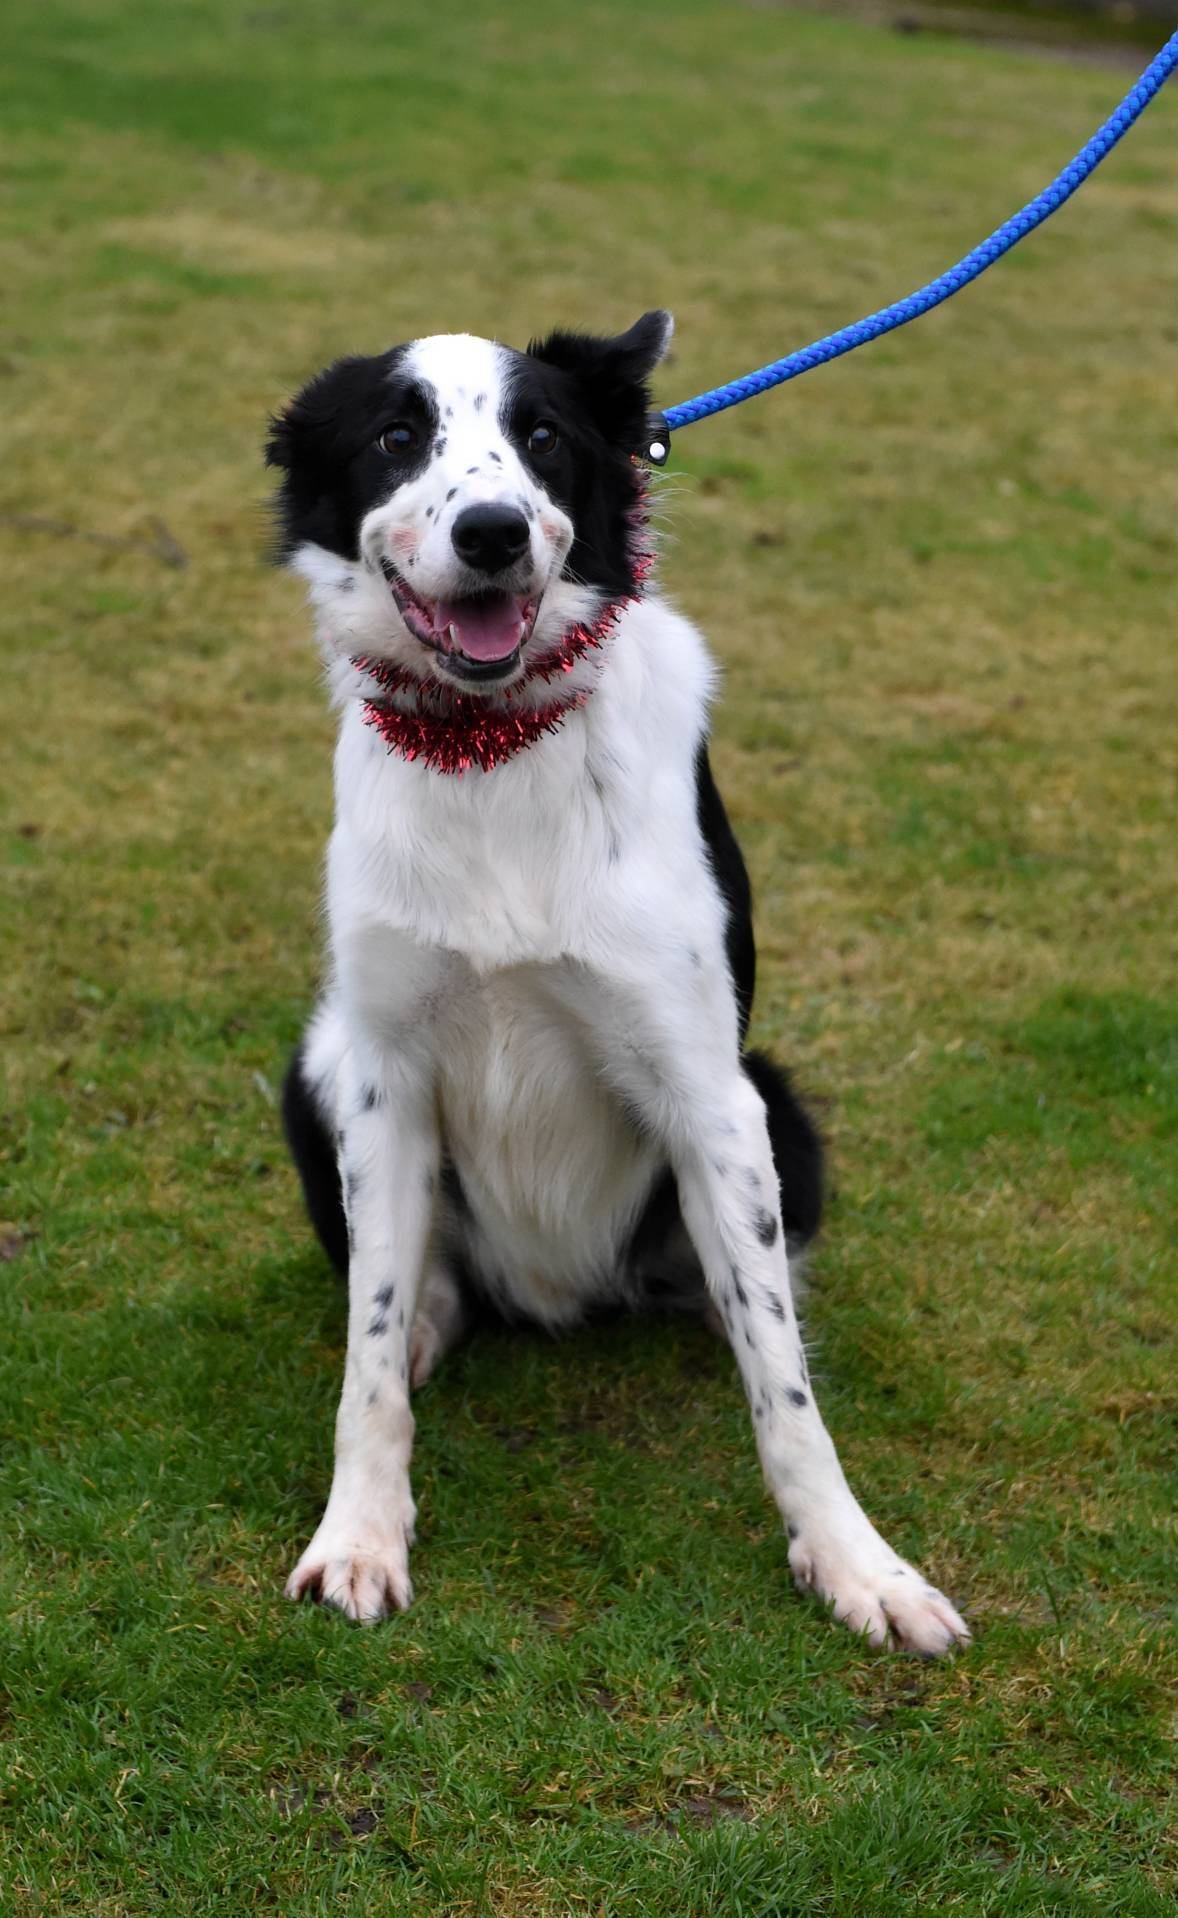 Playful Brock is another collie looking for a forever home. The two-year-old is good with dogs but doesn't get on with other animals. Brock is looking for a rural home where he has plenty of room to run around. However, this sweet-natured pooch loves a cuddle as well.